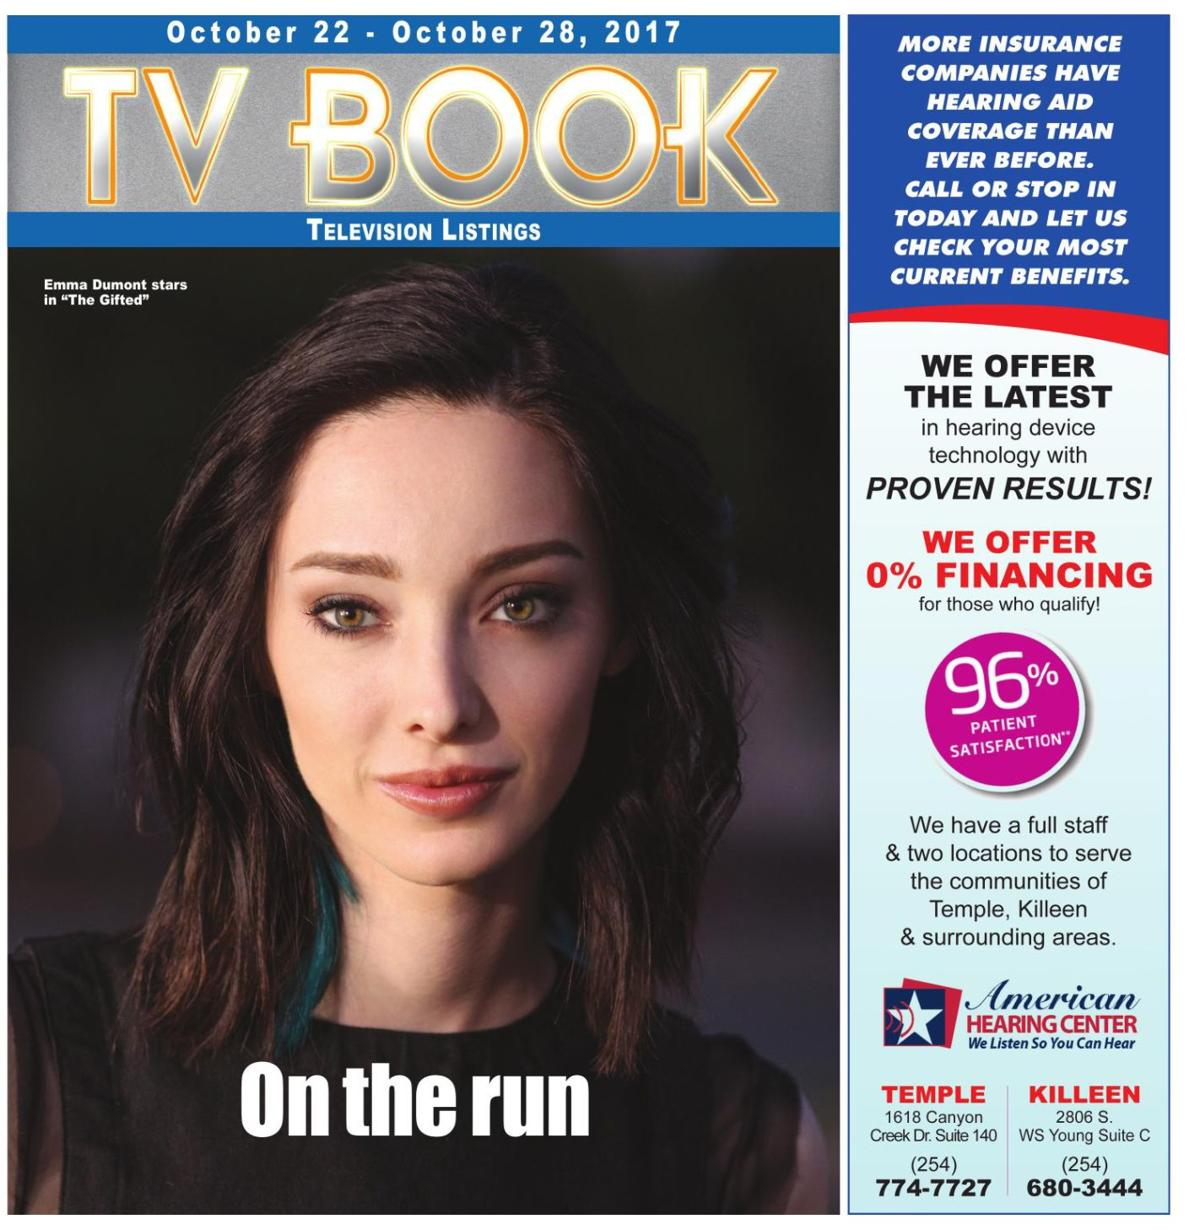 TV Book October 22nd - 28th